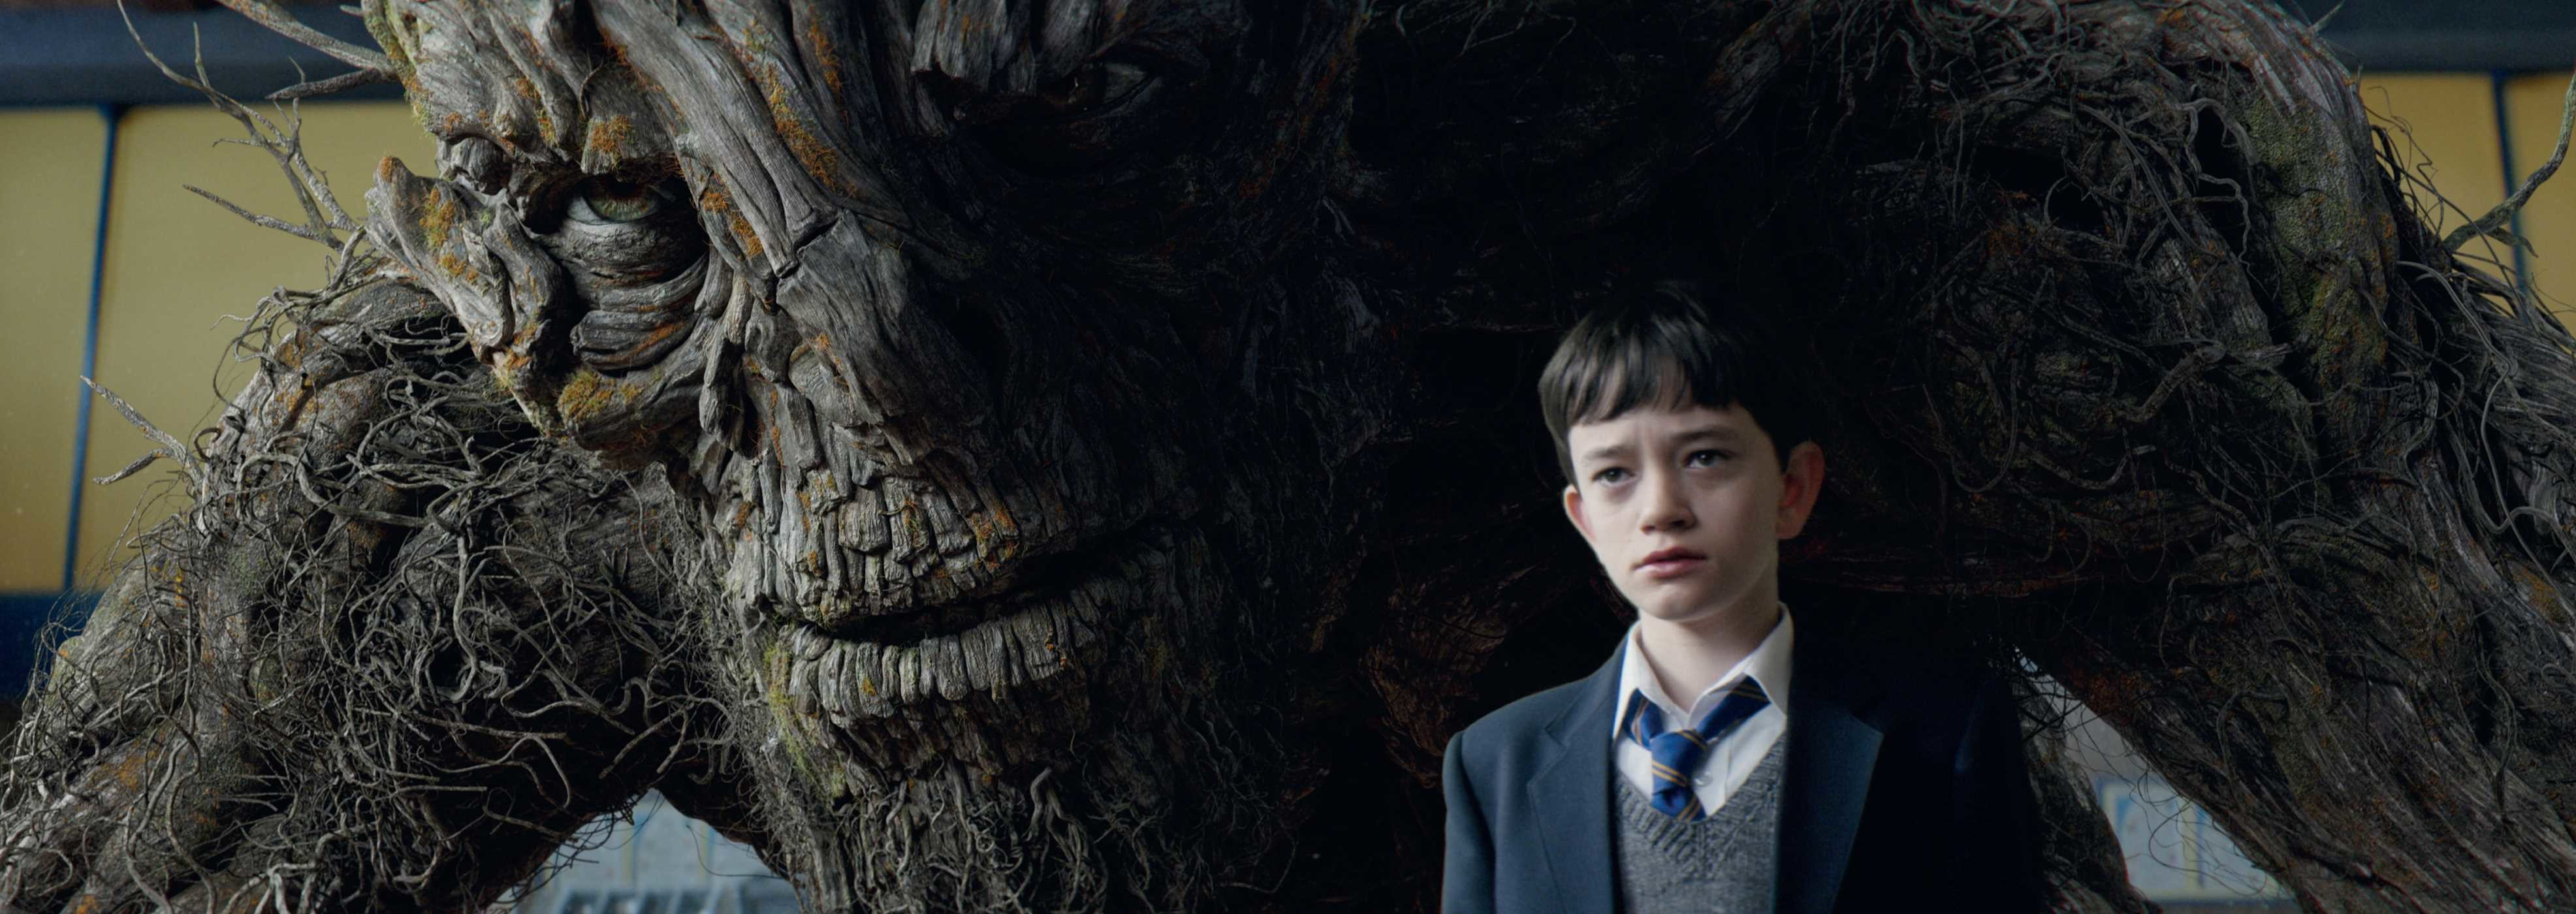 Facing The Truth in Cinema: A Monster Calls